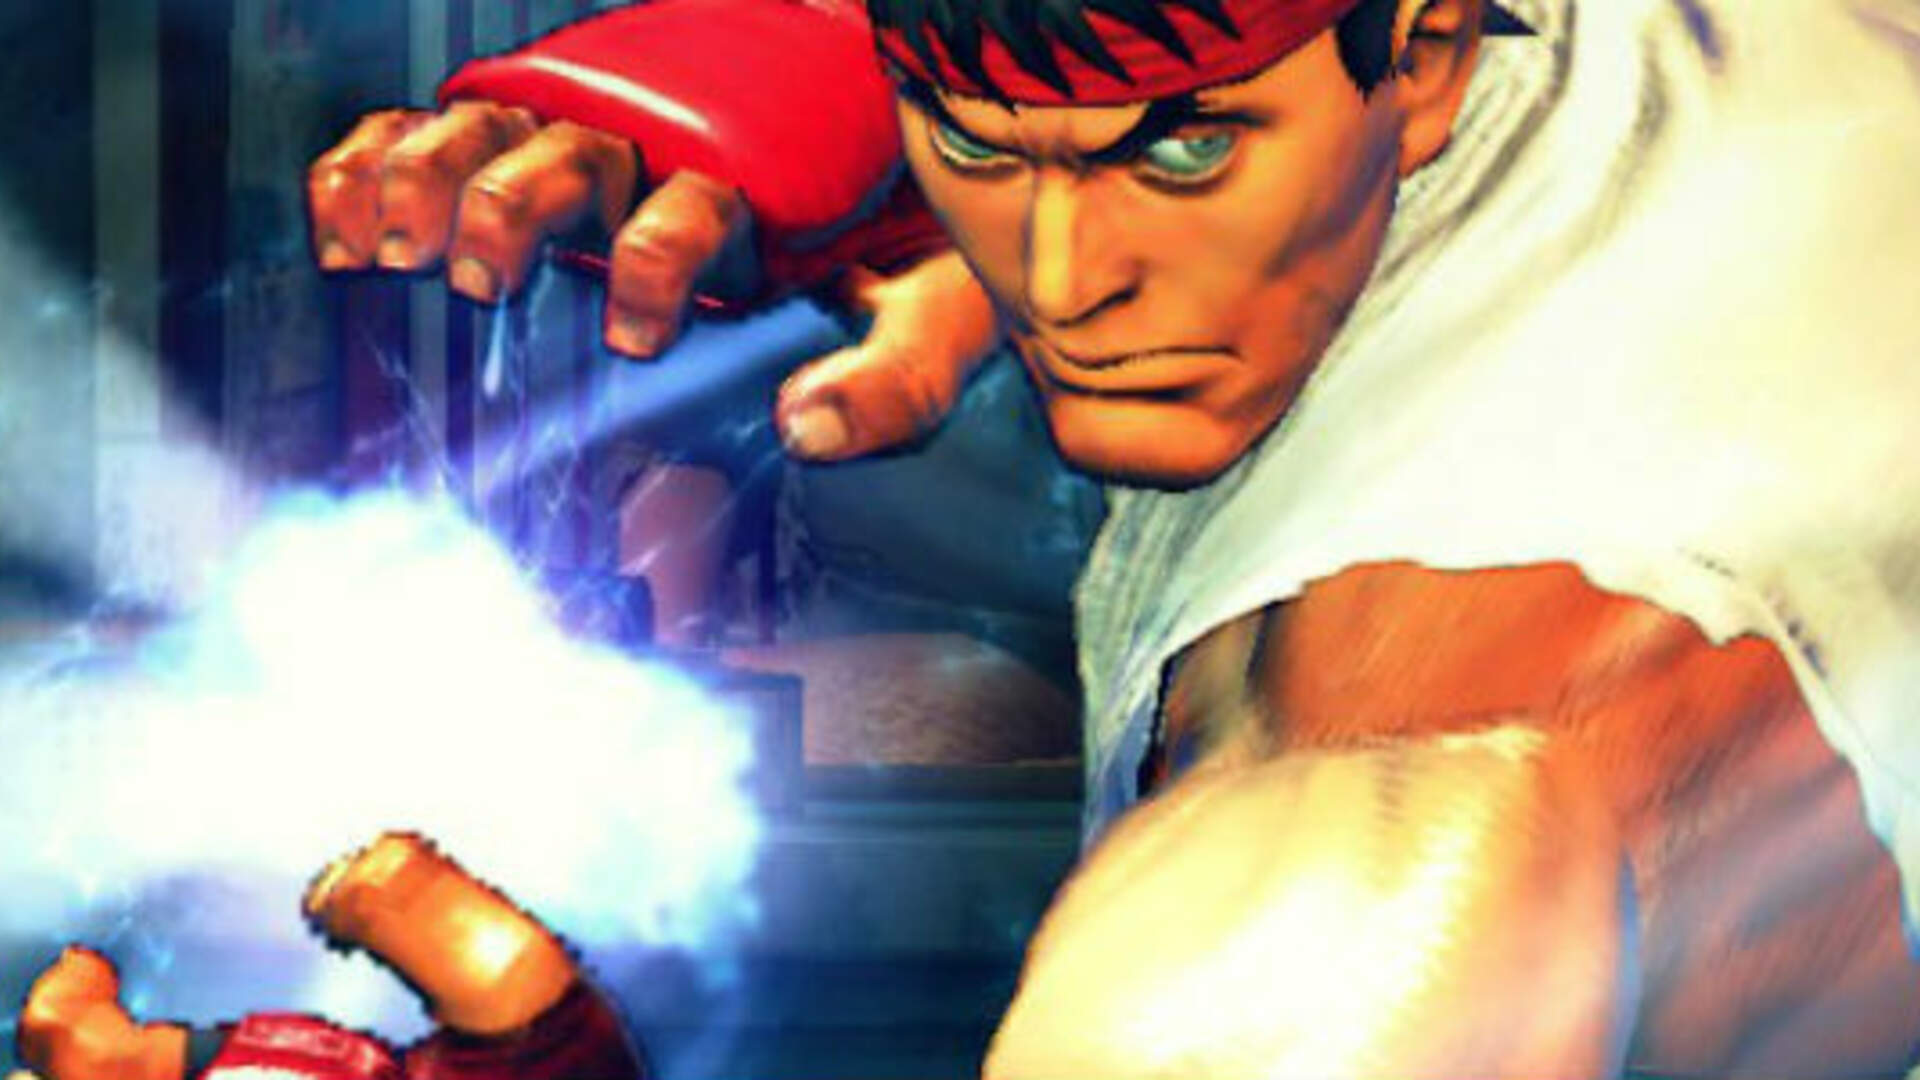 Street Fighter Producer Doesn't Want Series to End With IV